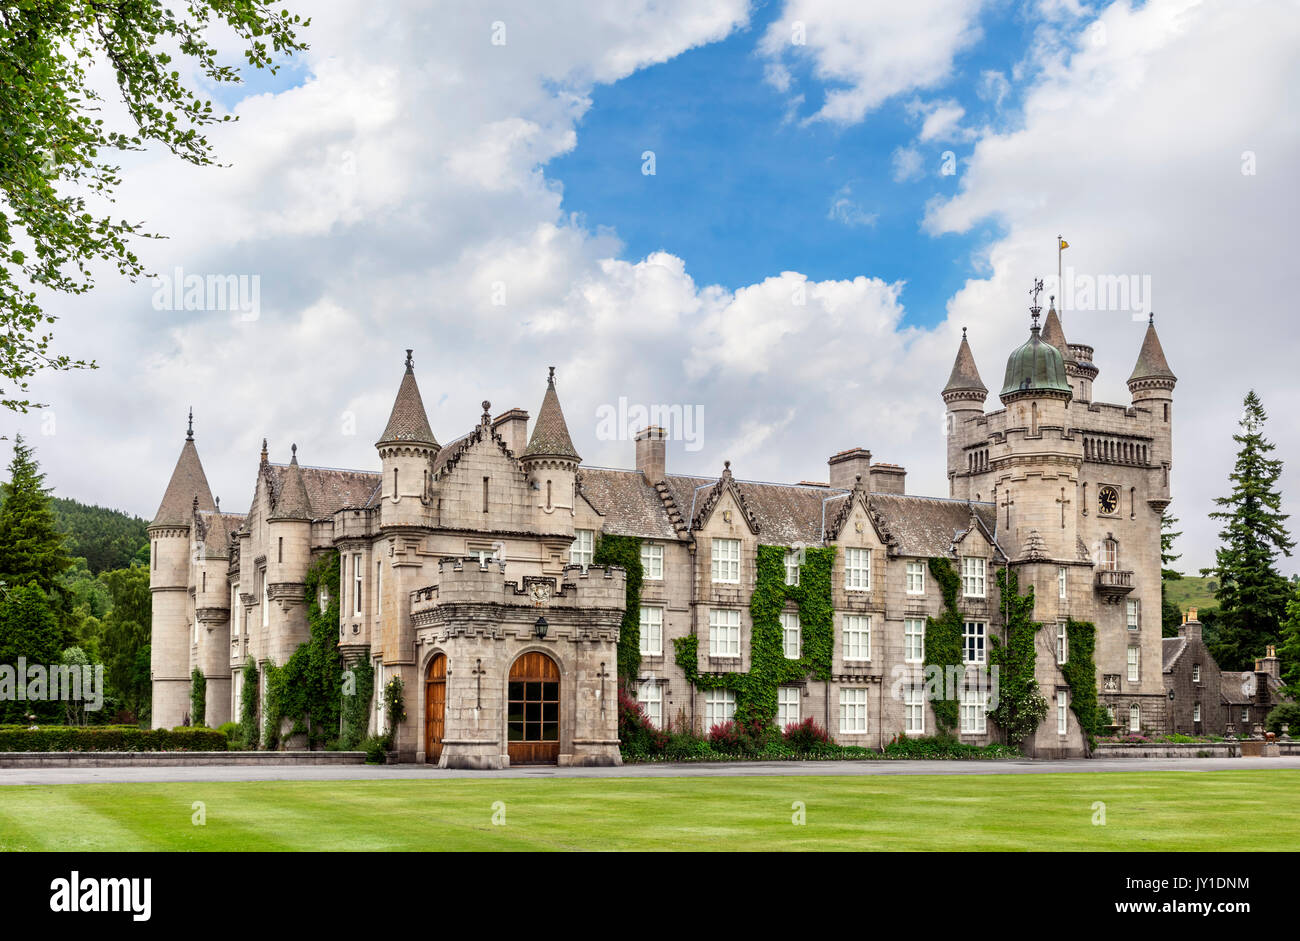 Balmoral Castle, Scottish residence of the Royal Family, Crathie, Royal Deeside, Aberdeenshire, Scotland, UK Stock Photo